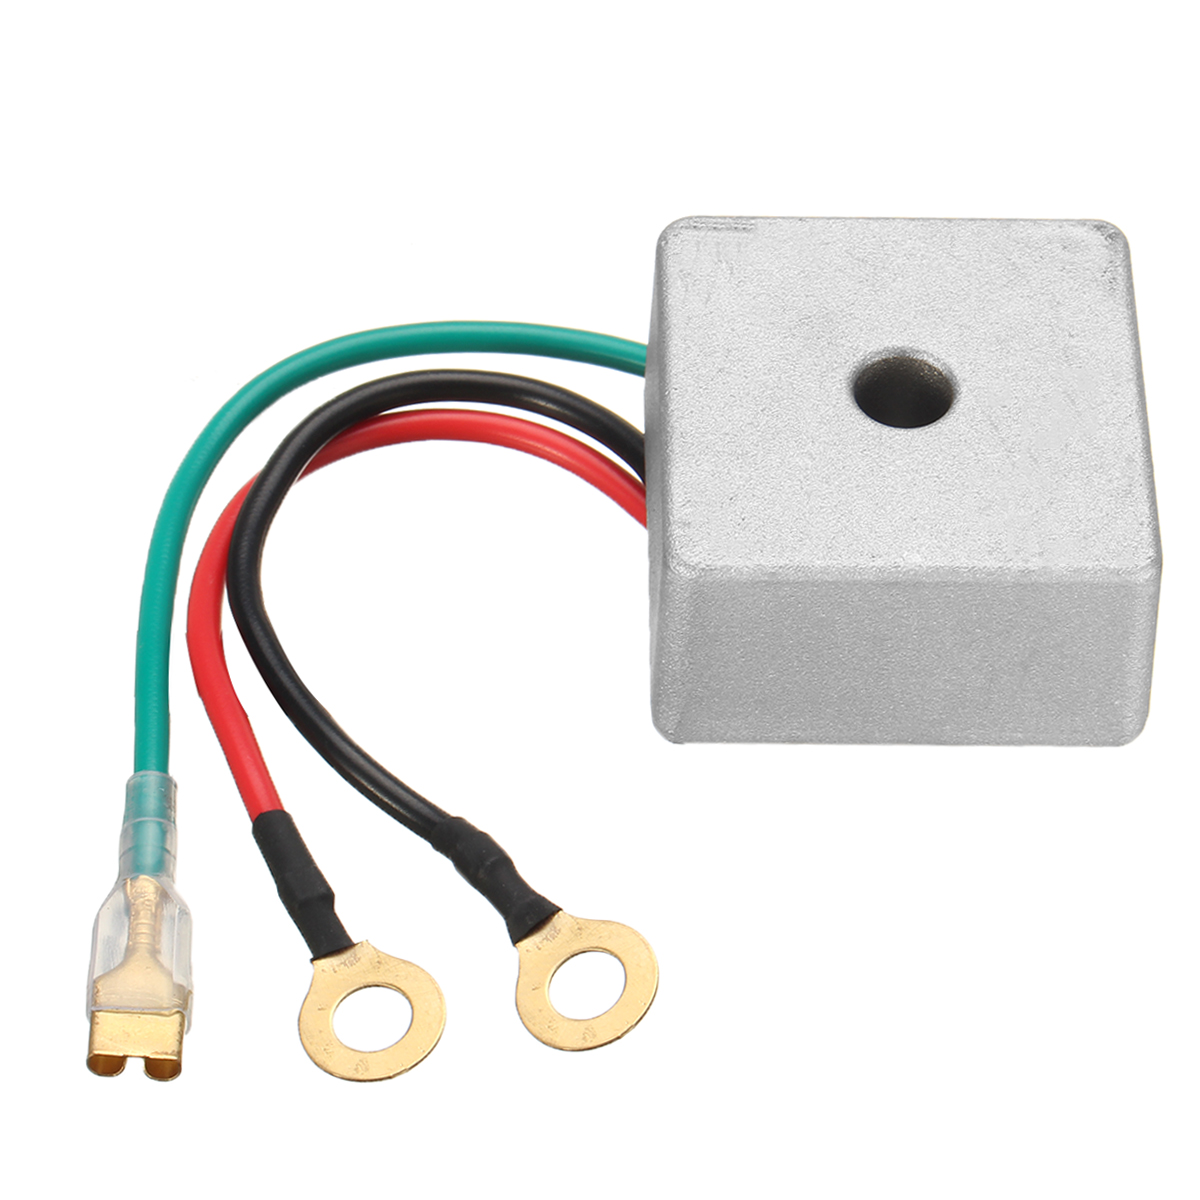 Voltage Regulator Rectifier for E-Z GO Golf Cart Club C